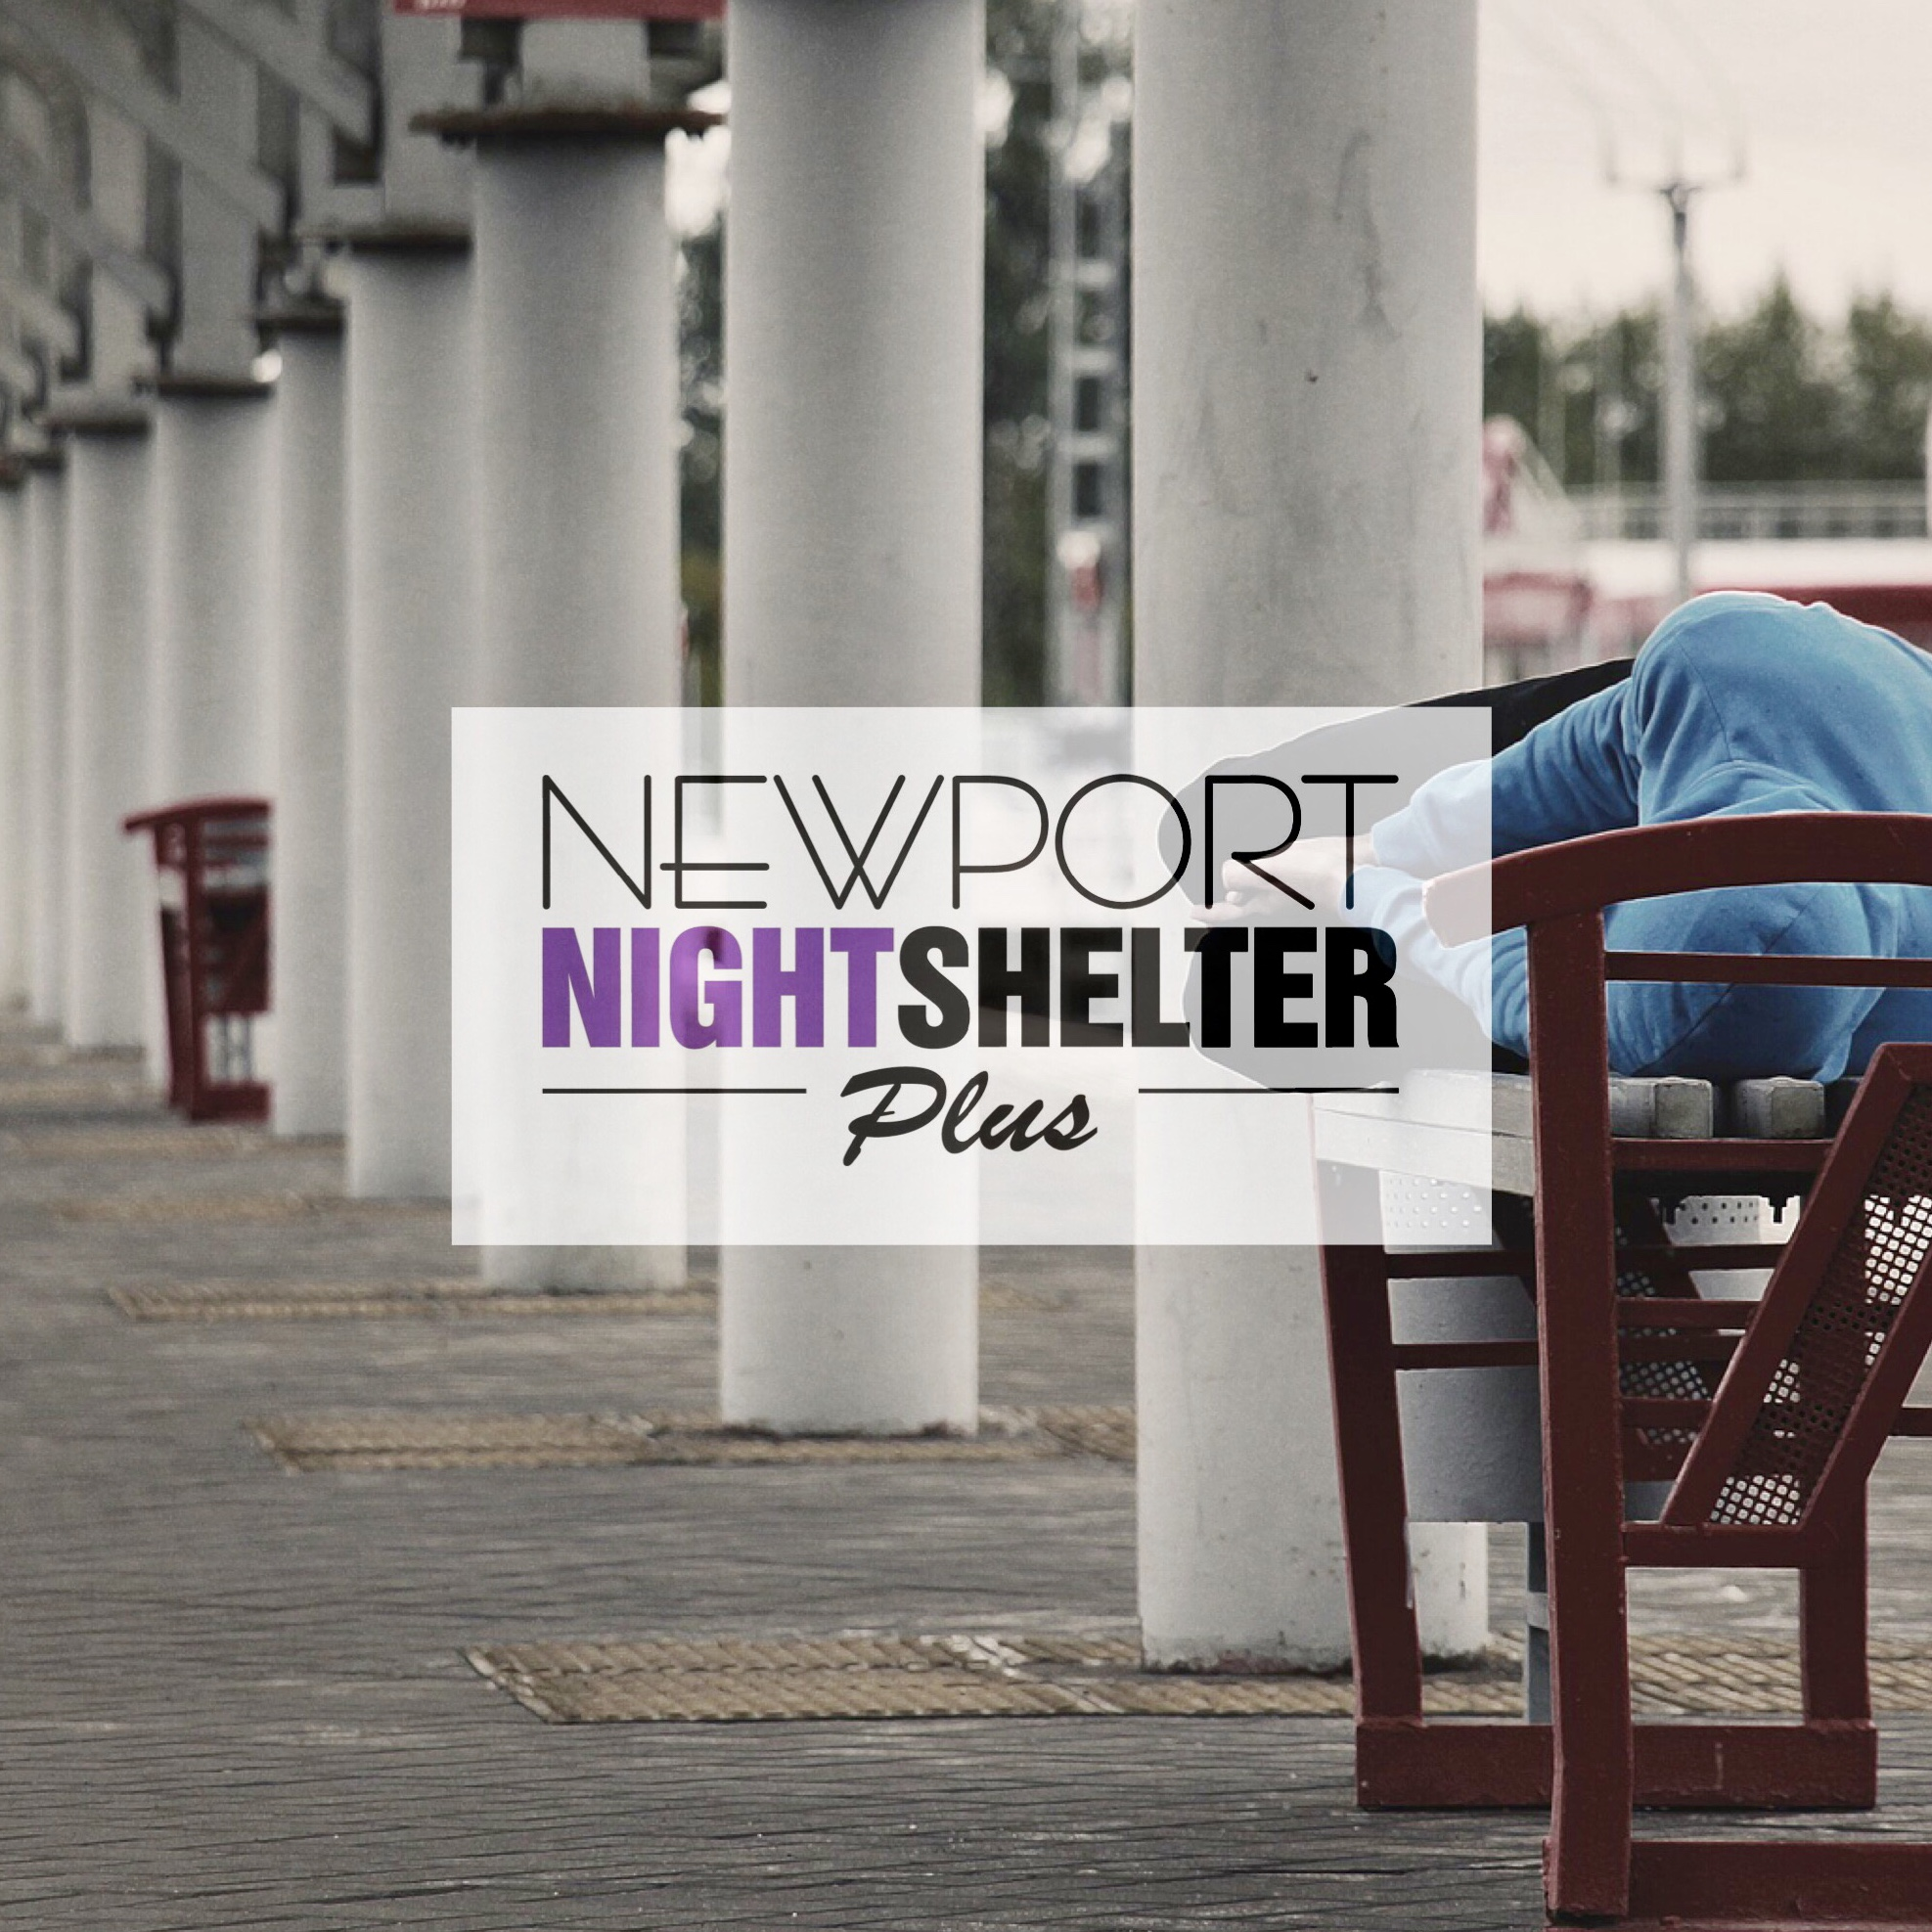 Newport Nightshelter Plus